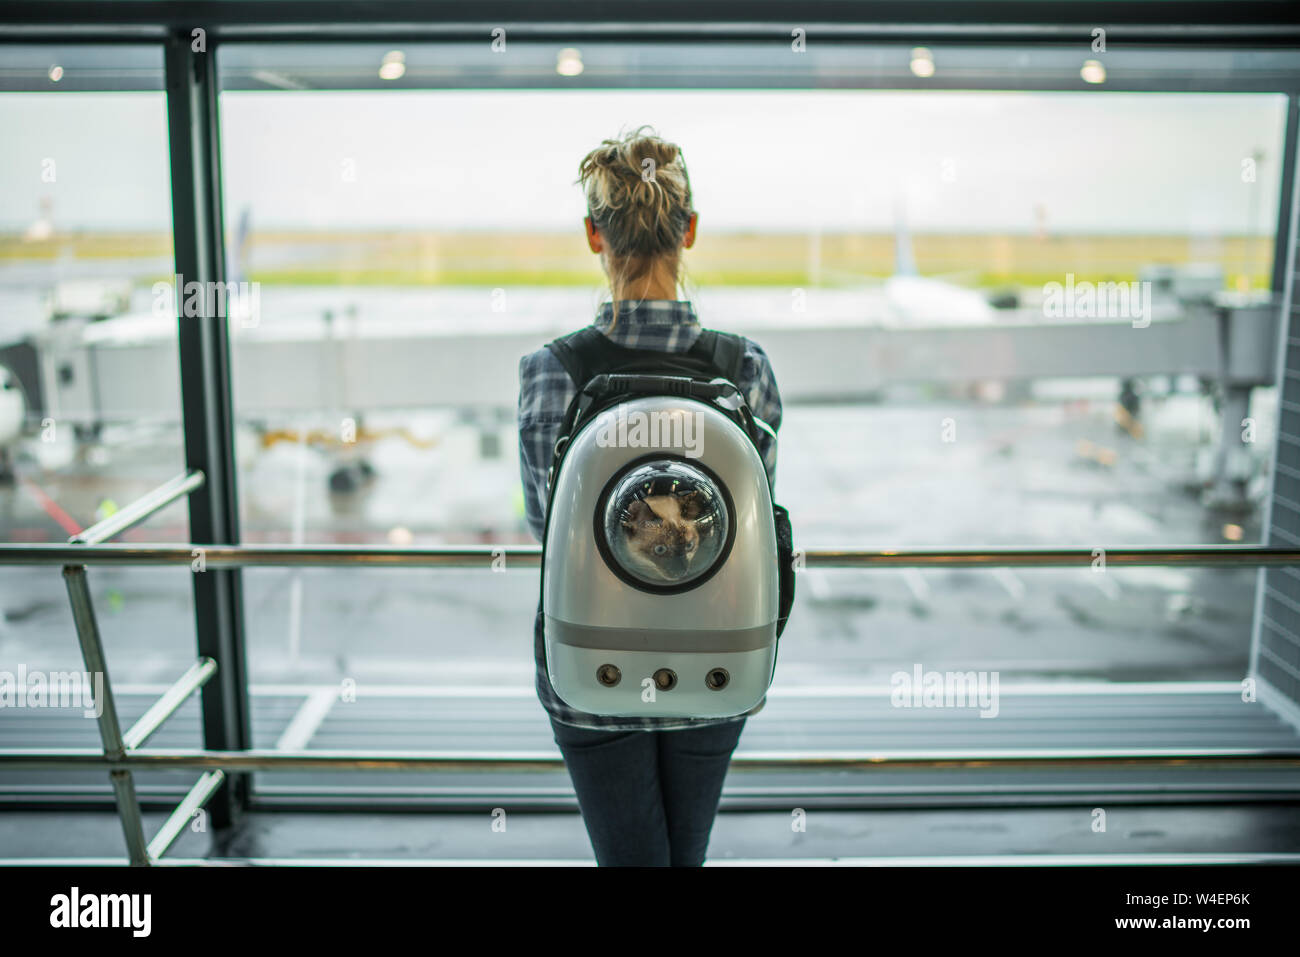 Woman wearing a space shuttle cat carrier on her back while